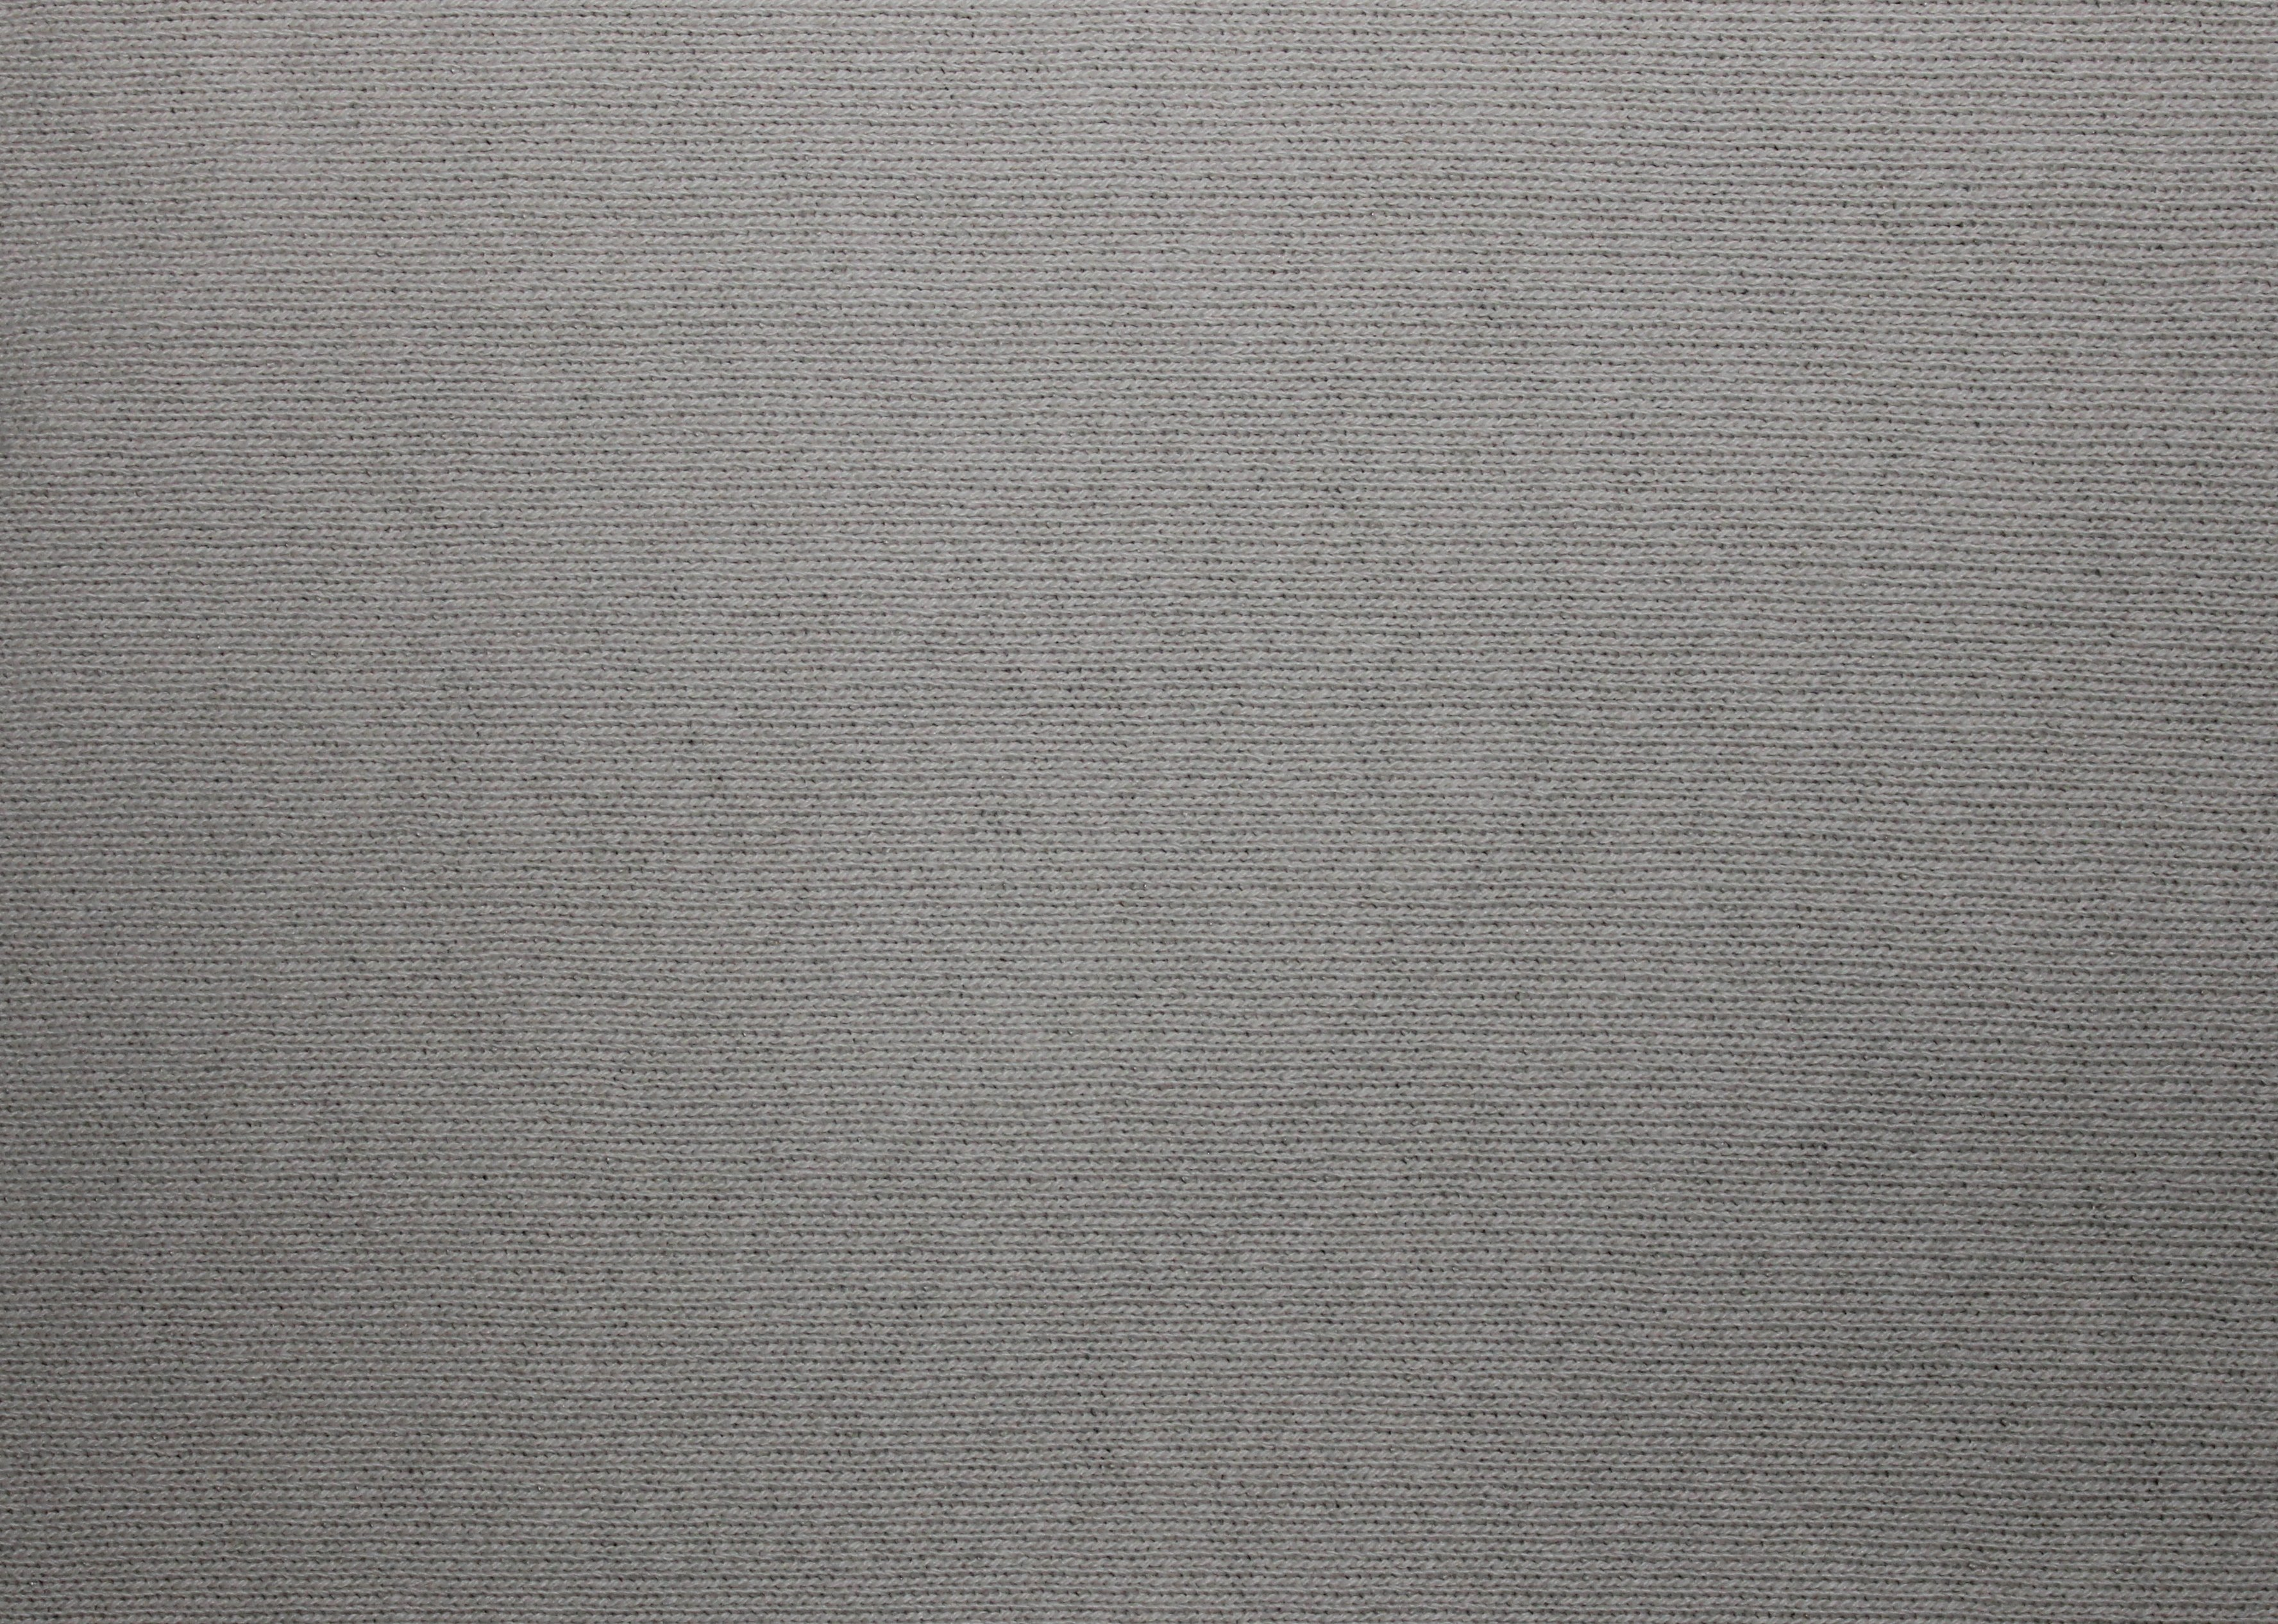 Gray Heather Knit T-Shirt Fabric Texture Heathered Teal T-Shirt Texture T-shirt fabric textures are the 'in thing' in the market and it is driving the designer-bandwagon crazy to say the least.